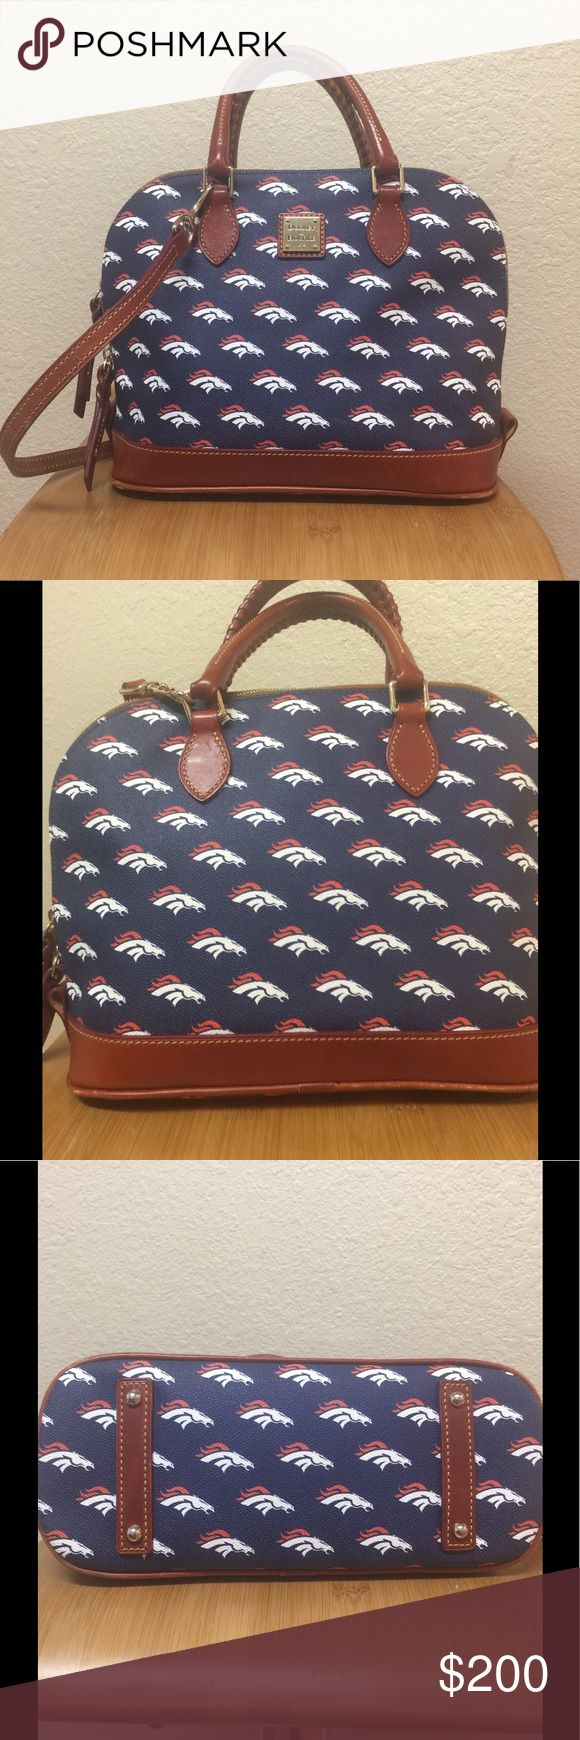 Dooney & Bourke Denver Broncos Satchel Dooney & Bourke NFL Denver Broncos Satchel. Used last season and still in good condition!!!! Other than normal use, it was well cared for!!! The most signs of use are in the bottom edges and a few scratches on D&B emblem. I have another set I am using and would like another Broncos fan to enjoy this beauty!! I do have it priced high for negotiation through offer feature!! Dooney & Bourke Bags